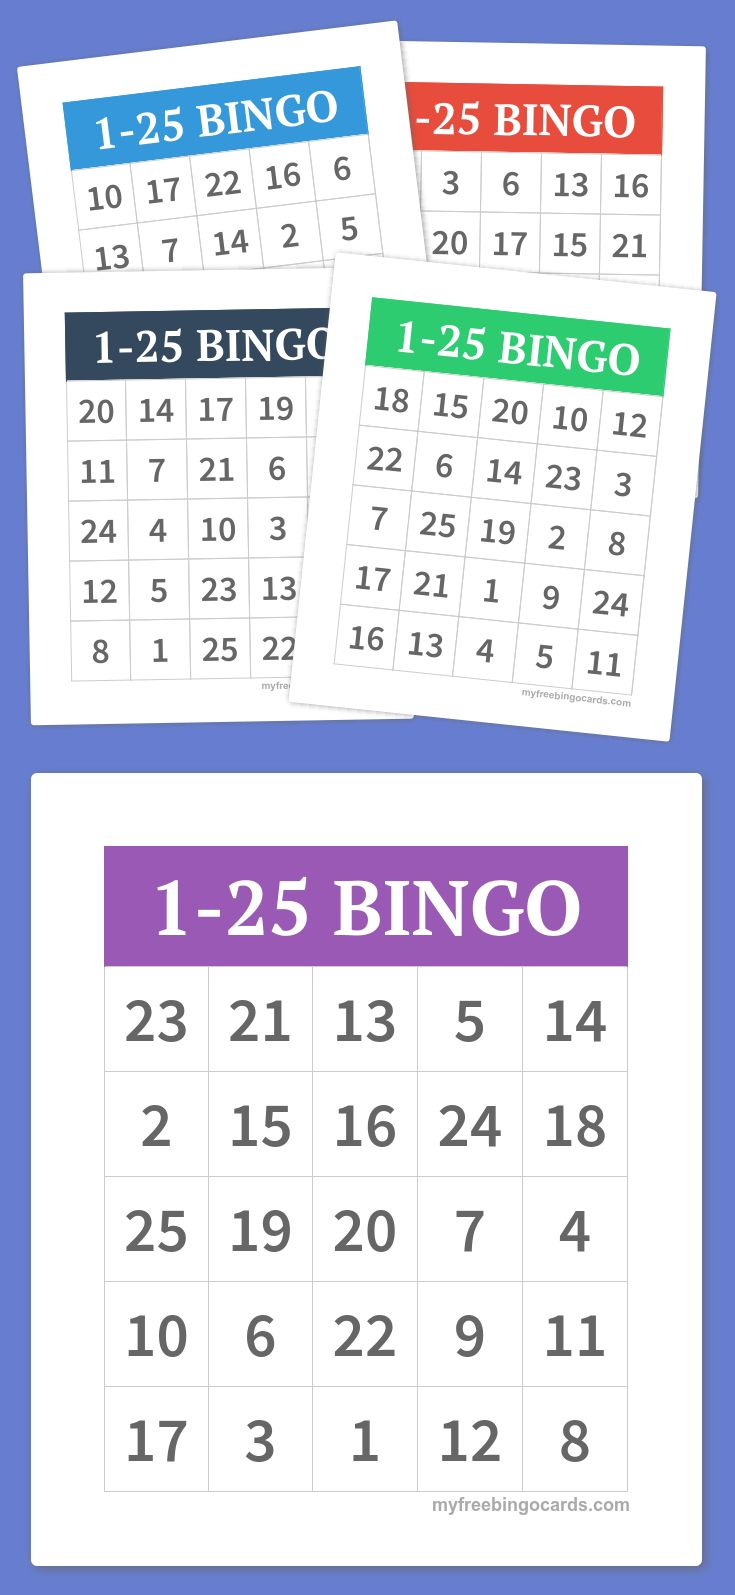 Famous 1 Page Resume Format Free Download Thin 1 Week Calendar Template Shaped 10 Best Resume Samples 10 Hour Schedule Templates Youthful 1099 Int Template White1930s Newspaper Template 25  Best Ideas About Free Bingo Card Generator On Pinterest ..